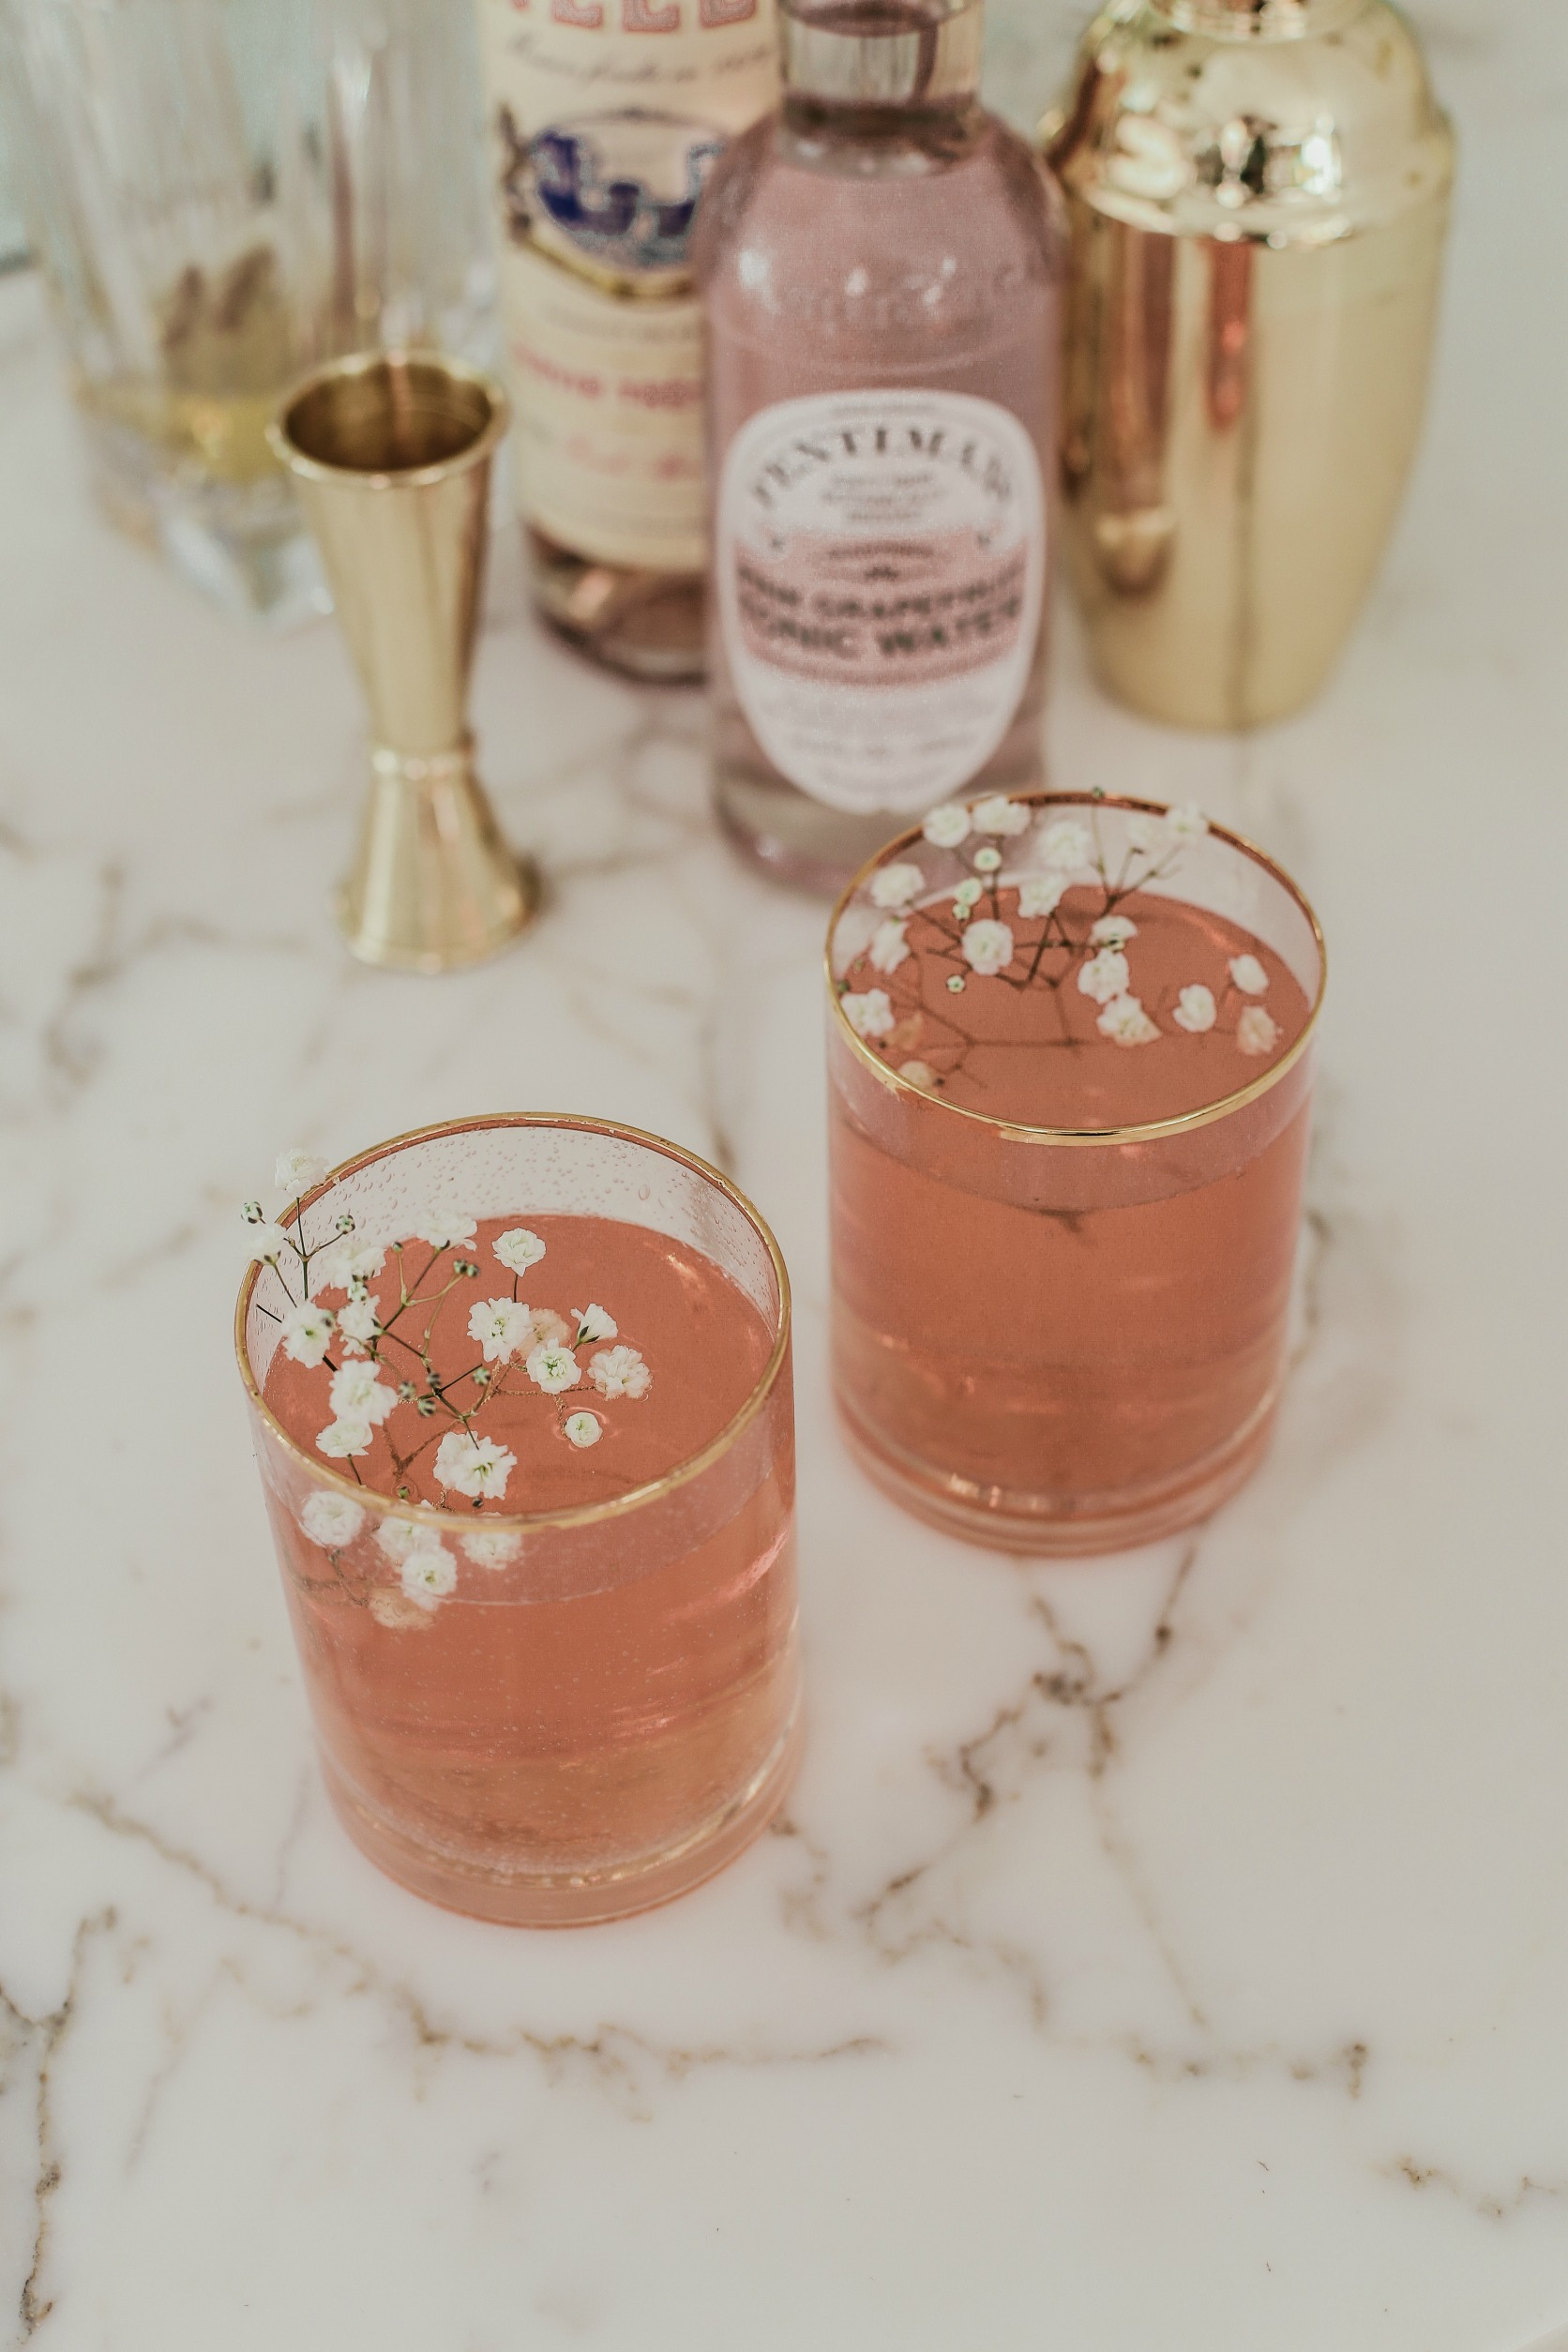 rose royale cocktail - perfect for sharing!